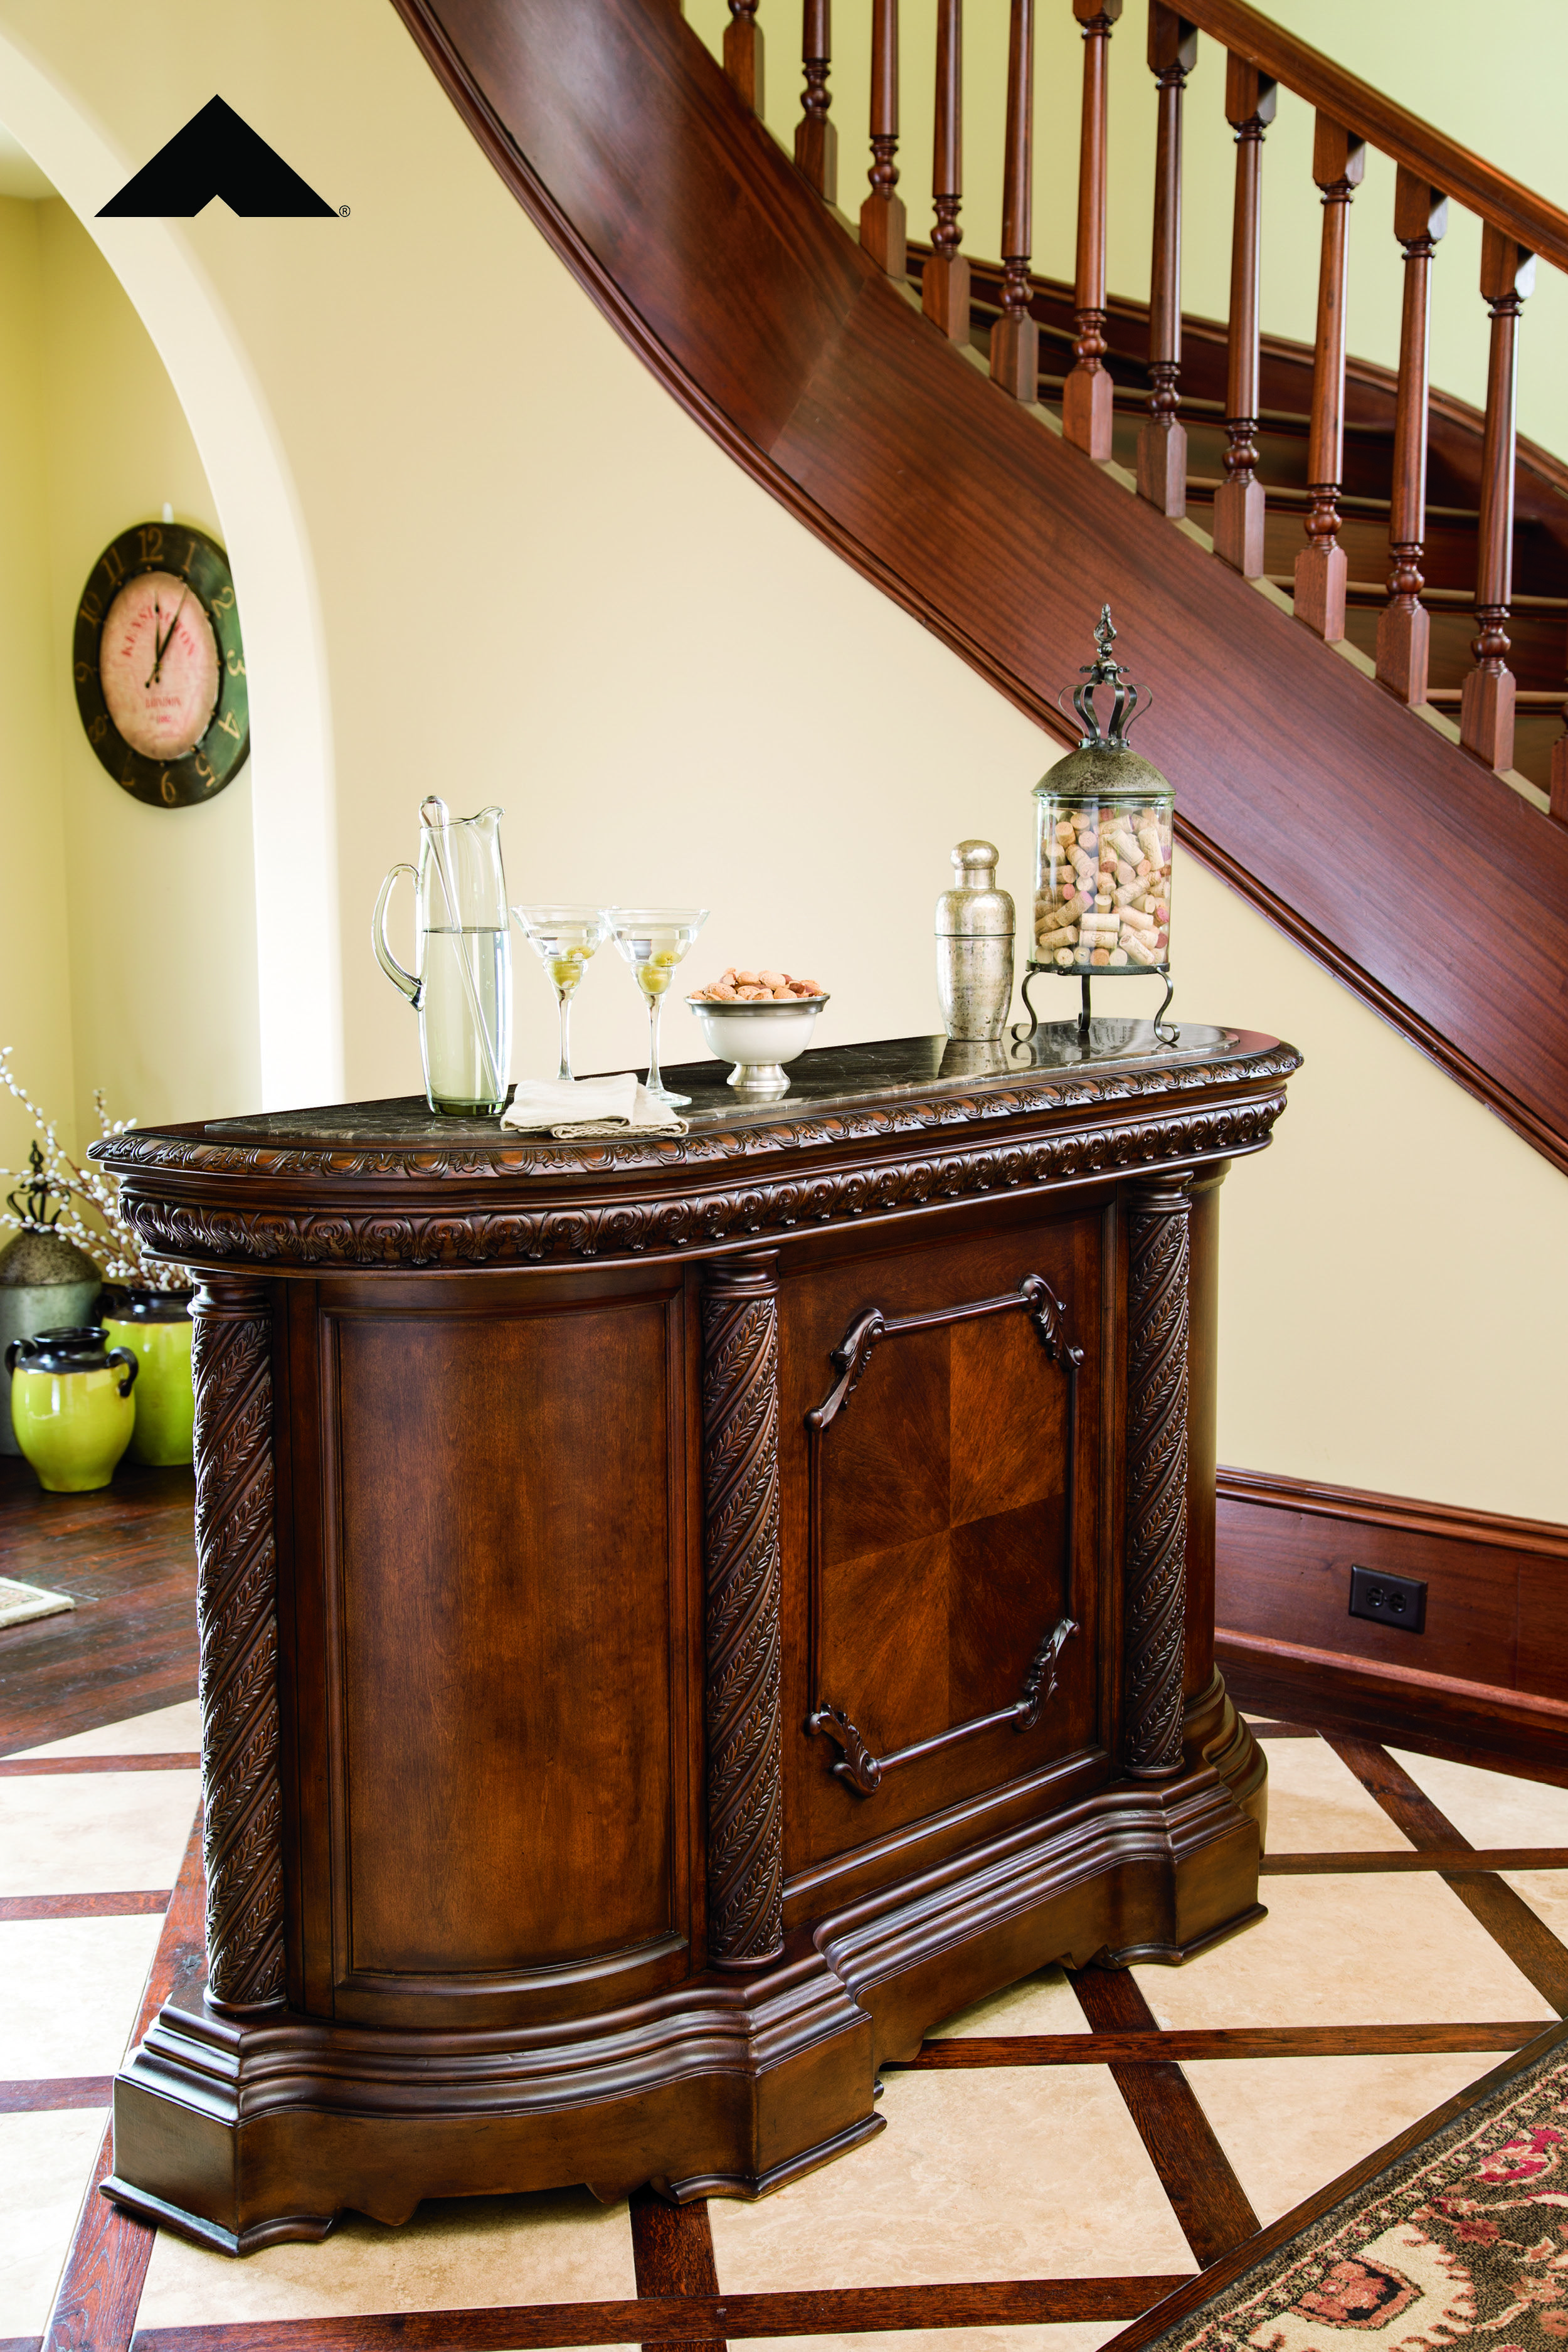 North S Old World Inspired Marble Top Bar By Ashley Furniture Ashleyfurniture Homedecor Dining Traditional Oldworld